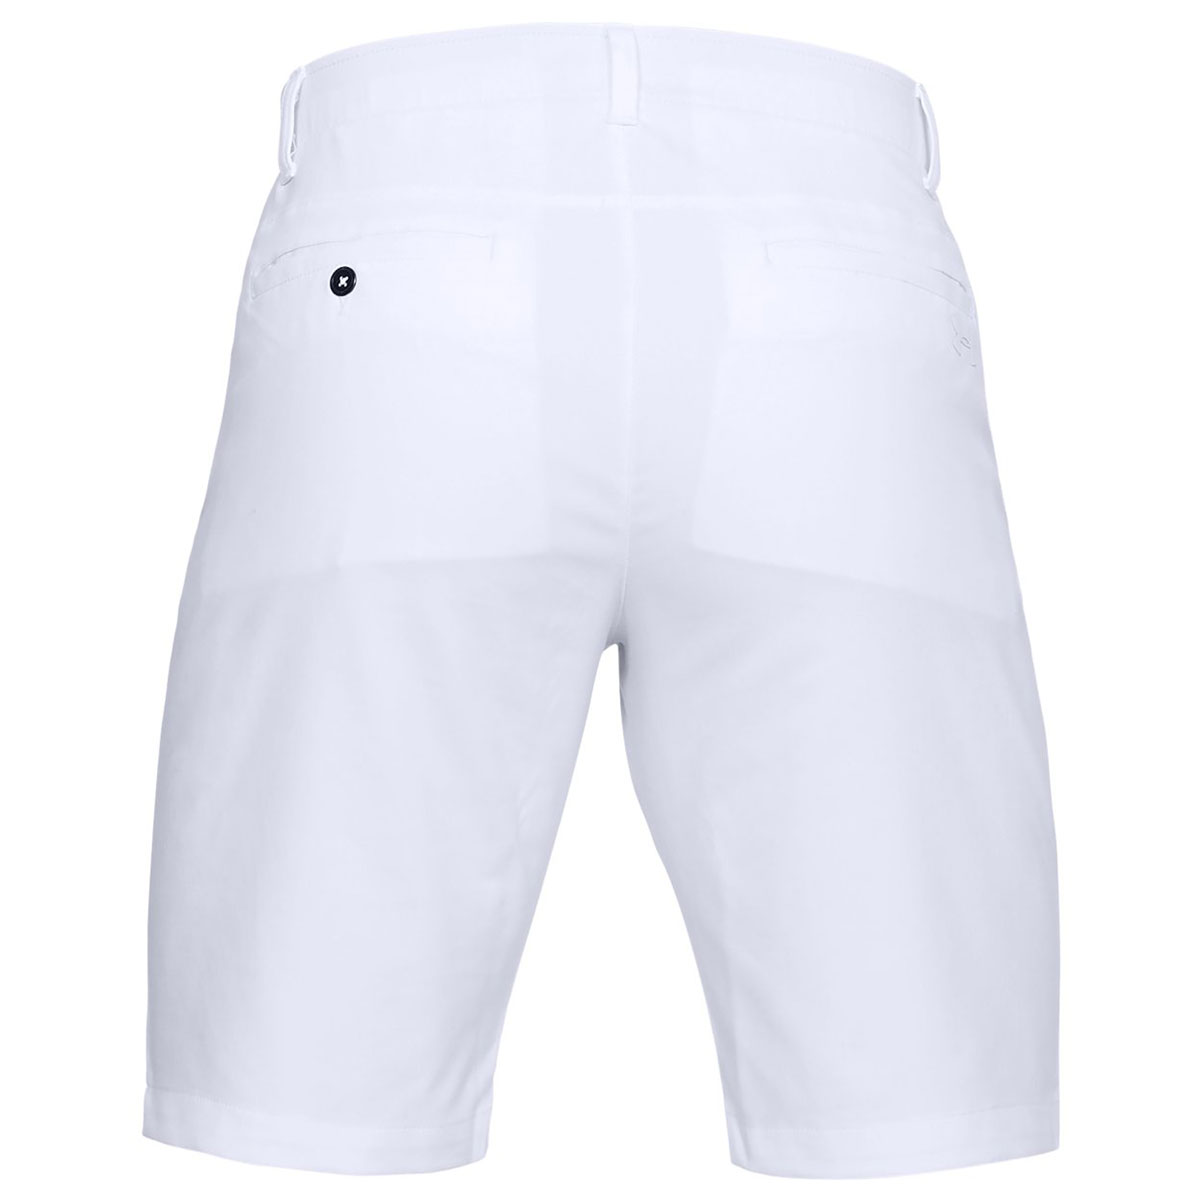 Under-Armour-Mens-Takeover-Taper-Mid-Length-Golf-Shorts-42-OFF-RRP thumbnail 20